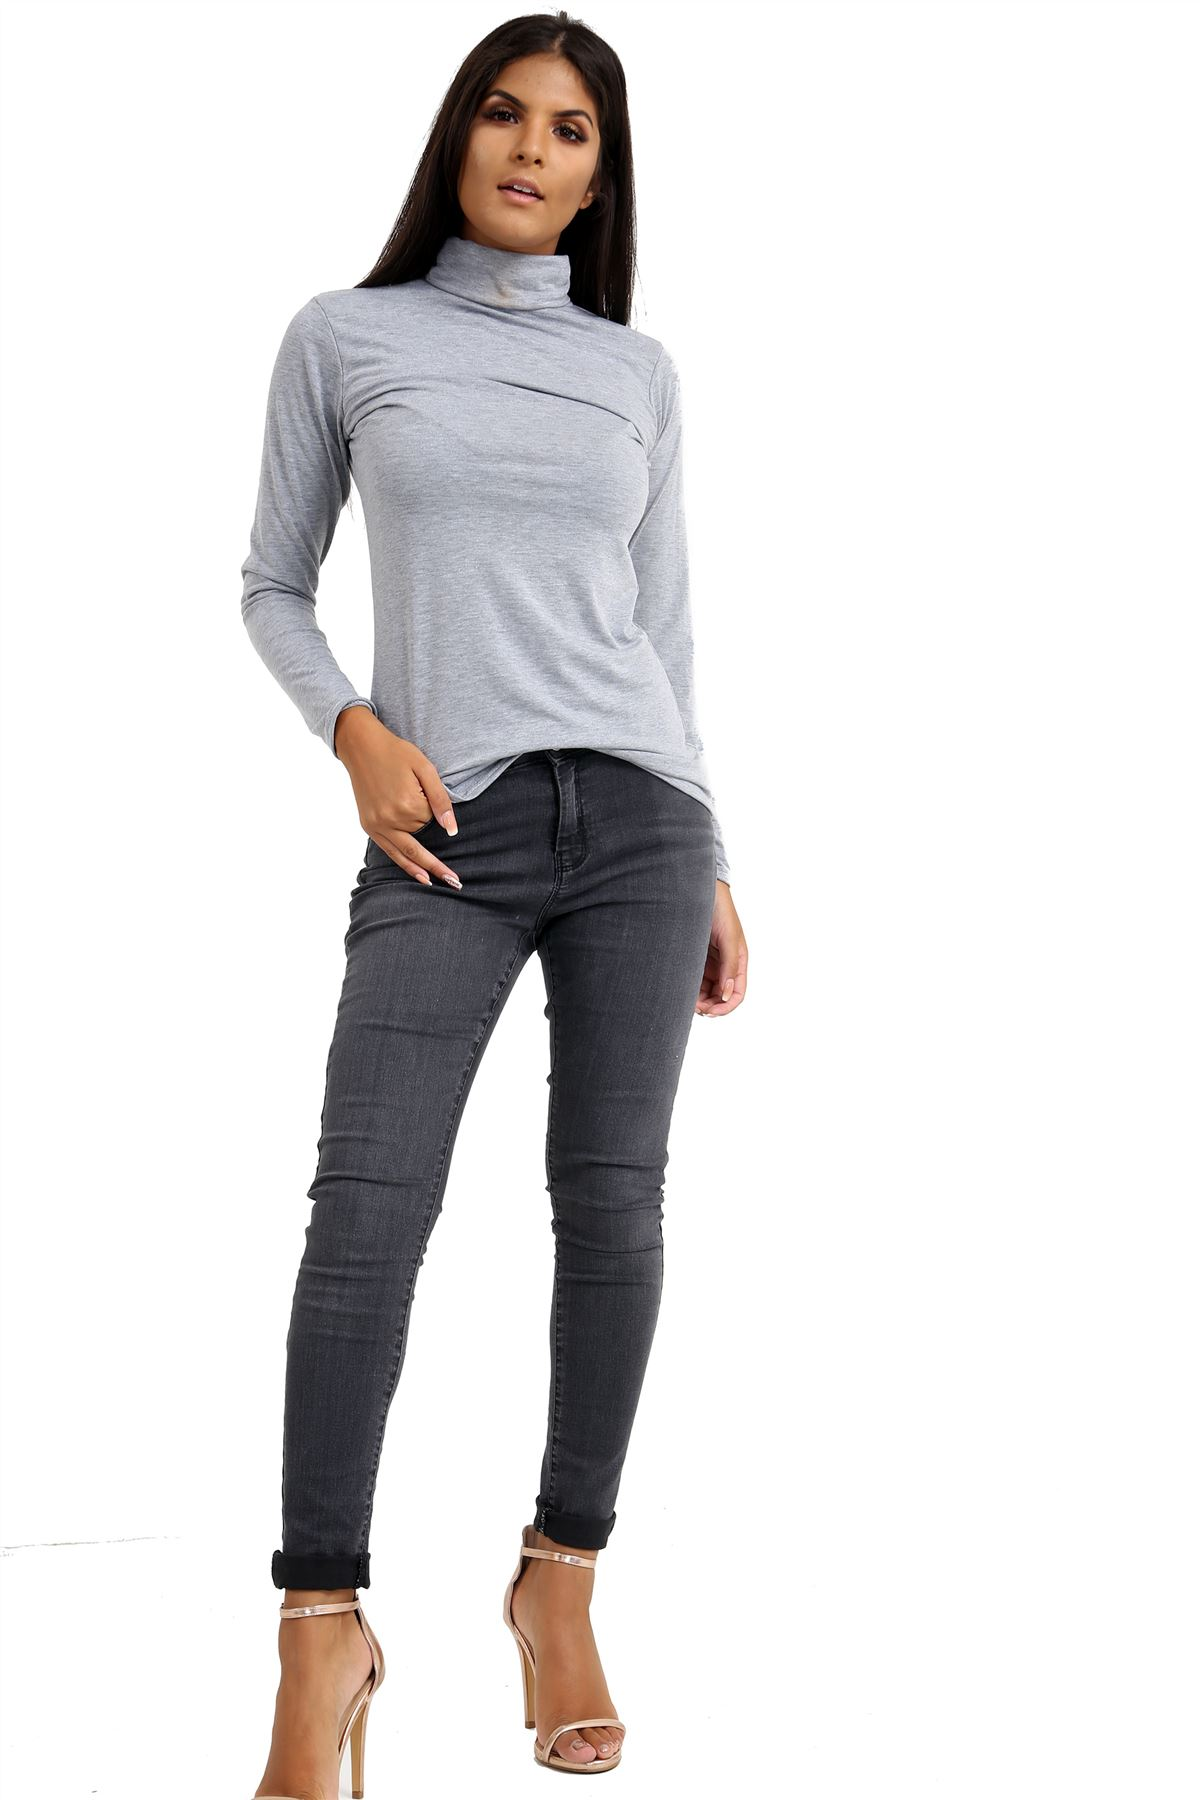 New-Ladies-Long-Sleeve-Plain-Turtle-Polo-Roll-Neck-Stretch-Jumper-T-Shirt-TeeTop thumbnail 48